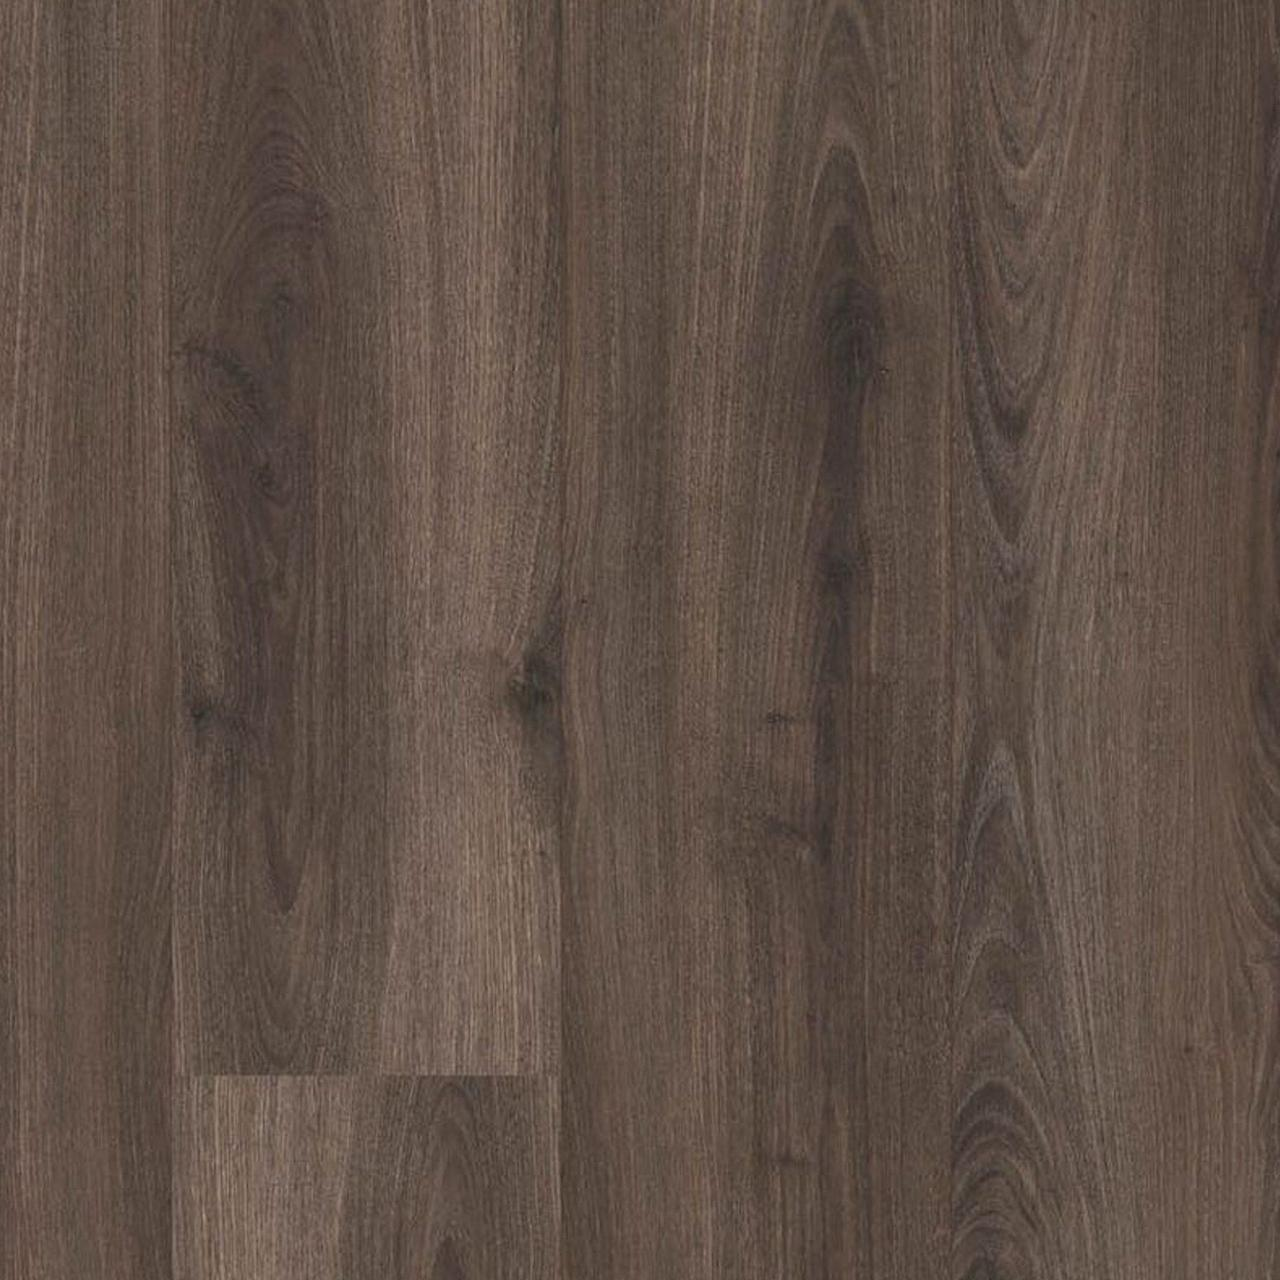 Биопол Purline Wineo 1500 PL Wood XL Royal Chestnut Mocca